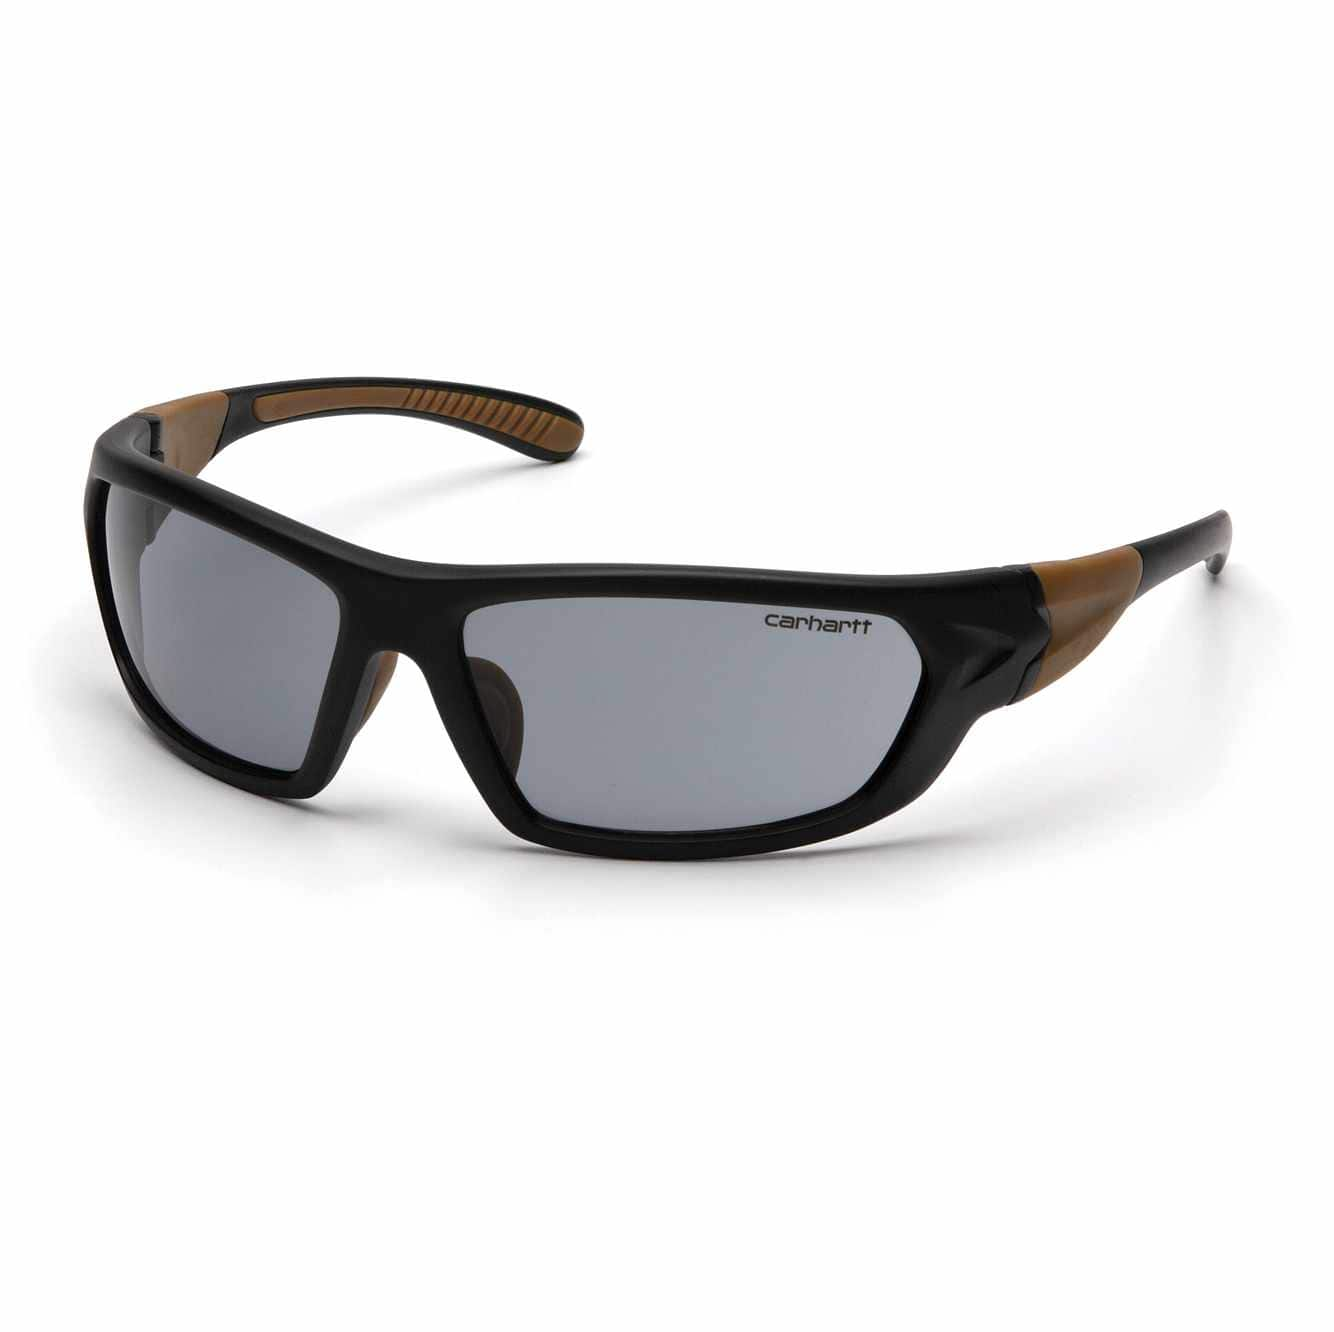 Picture of Carbondale Safety Glasses in Gray